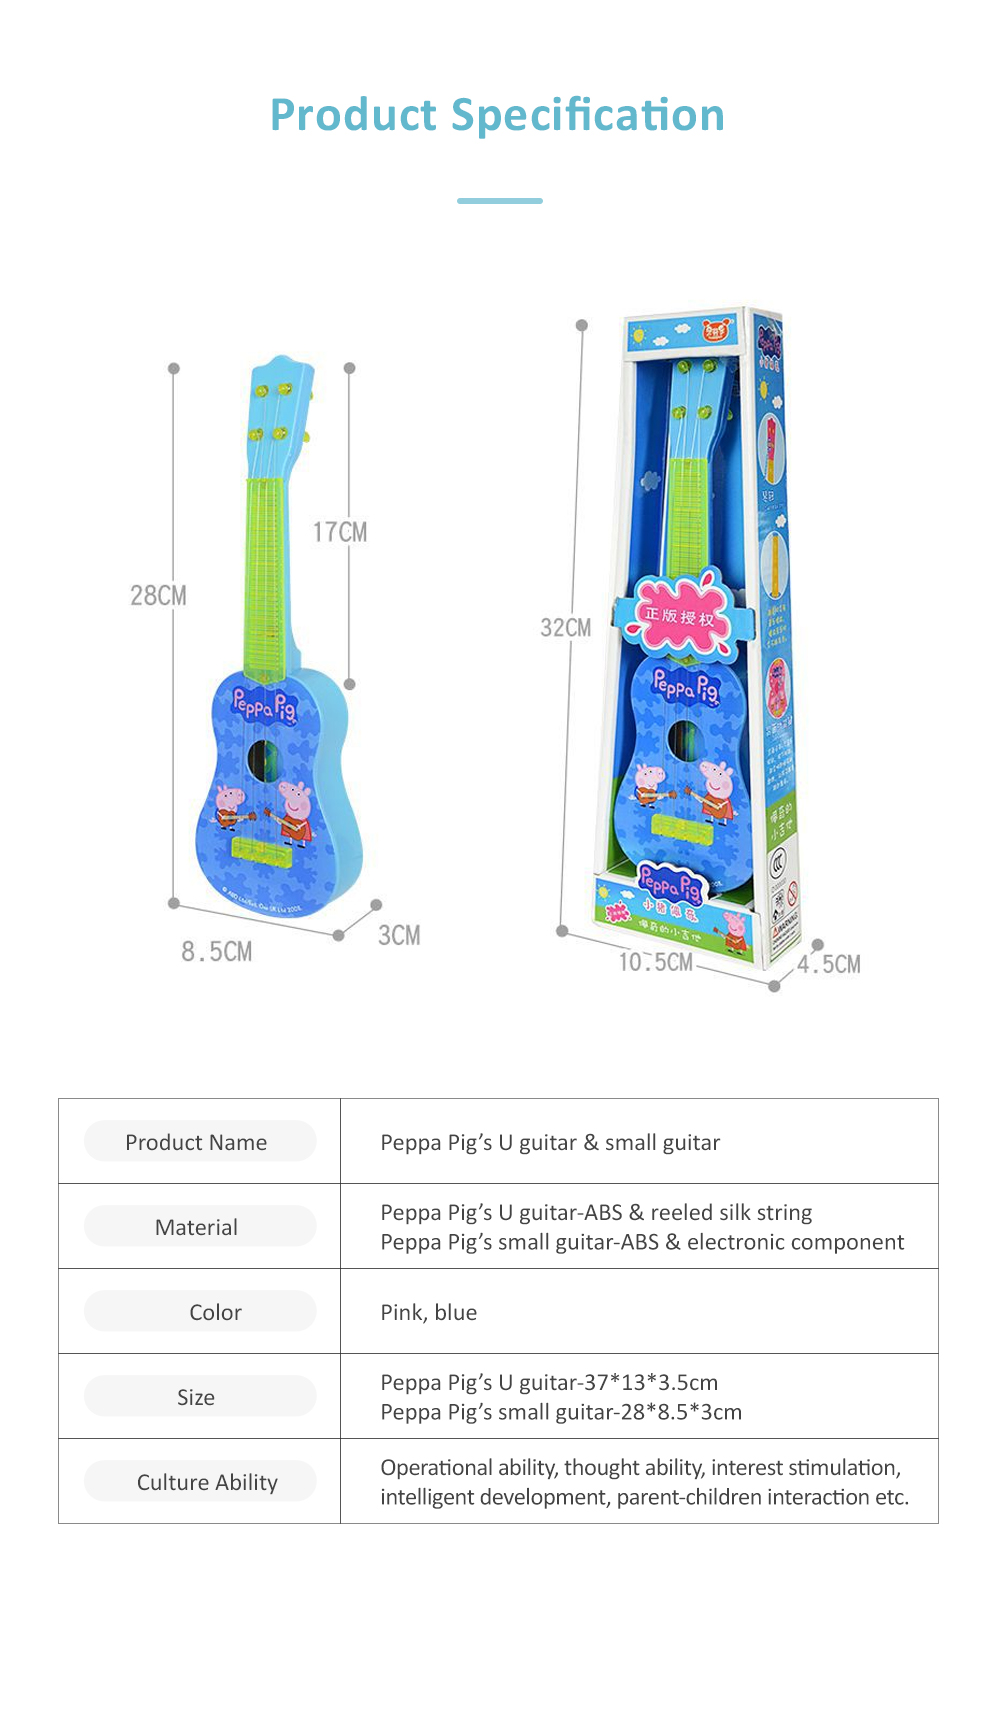 Simulated Mini Guitar Toy for Kids' Gift Choice Peppa Pig Pattern Guitar Toy Small Size Musical Instrument Plaything 7